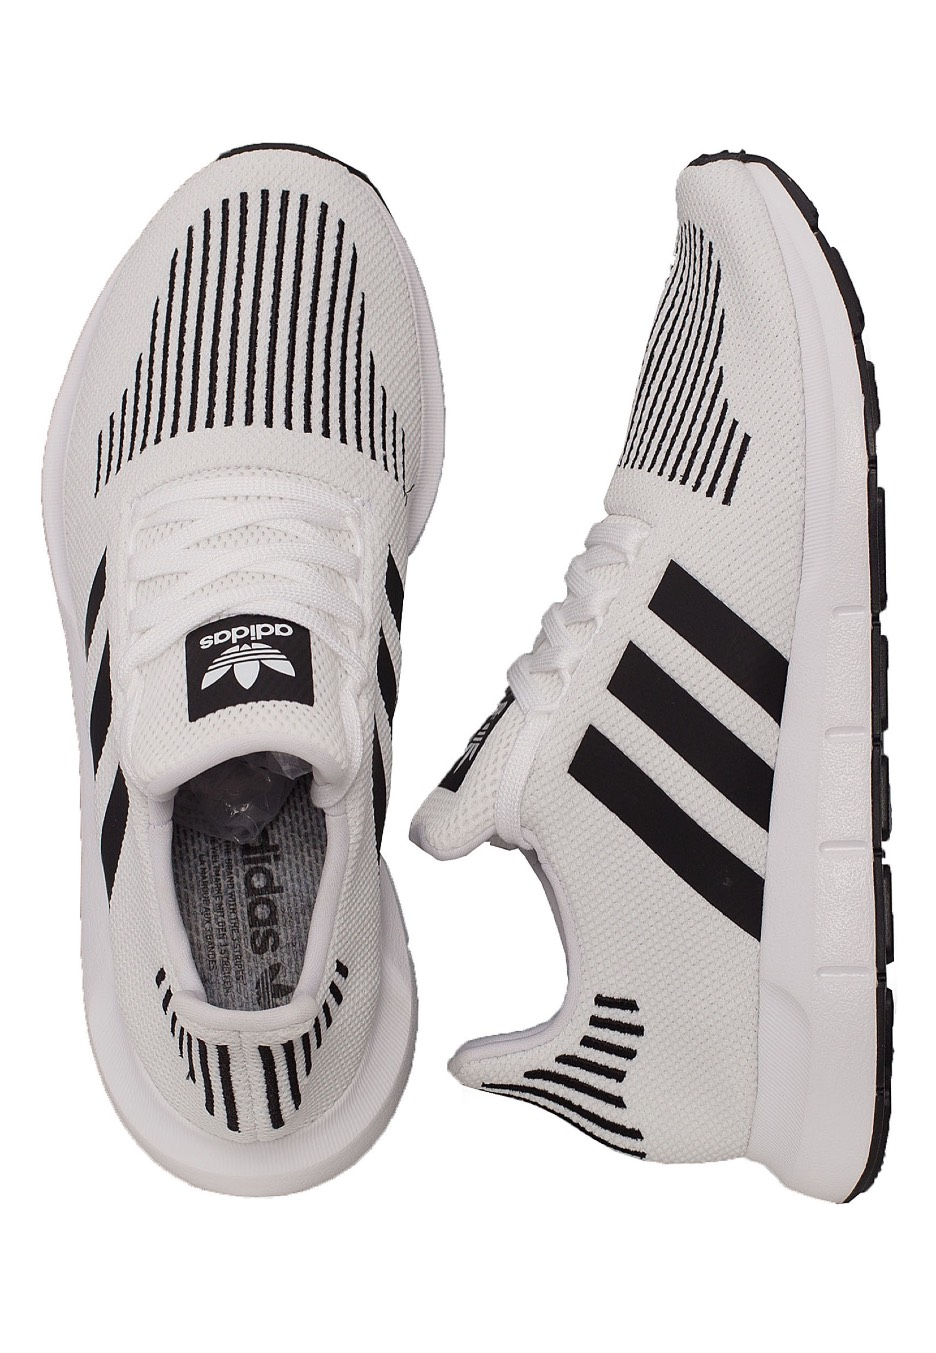 580865a874 Adidas - Swift Run Ftw White/Core Black/Medium Grey Heather - Shoes